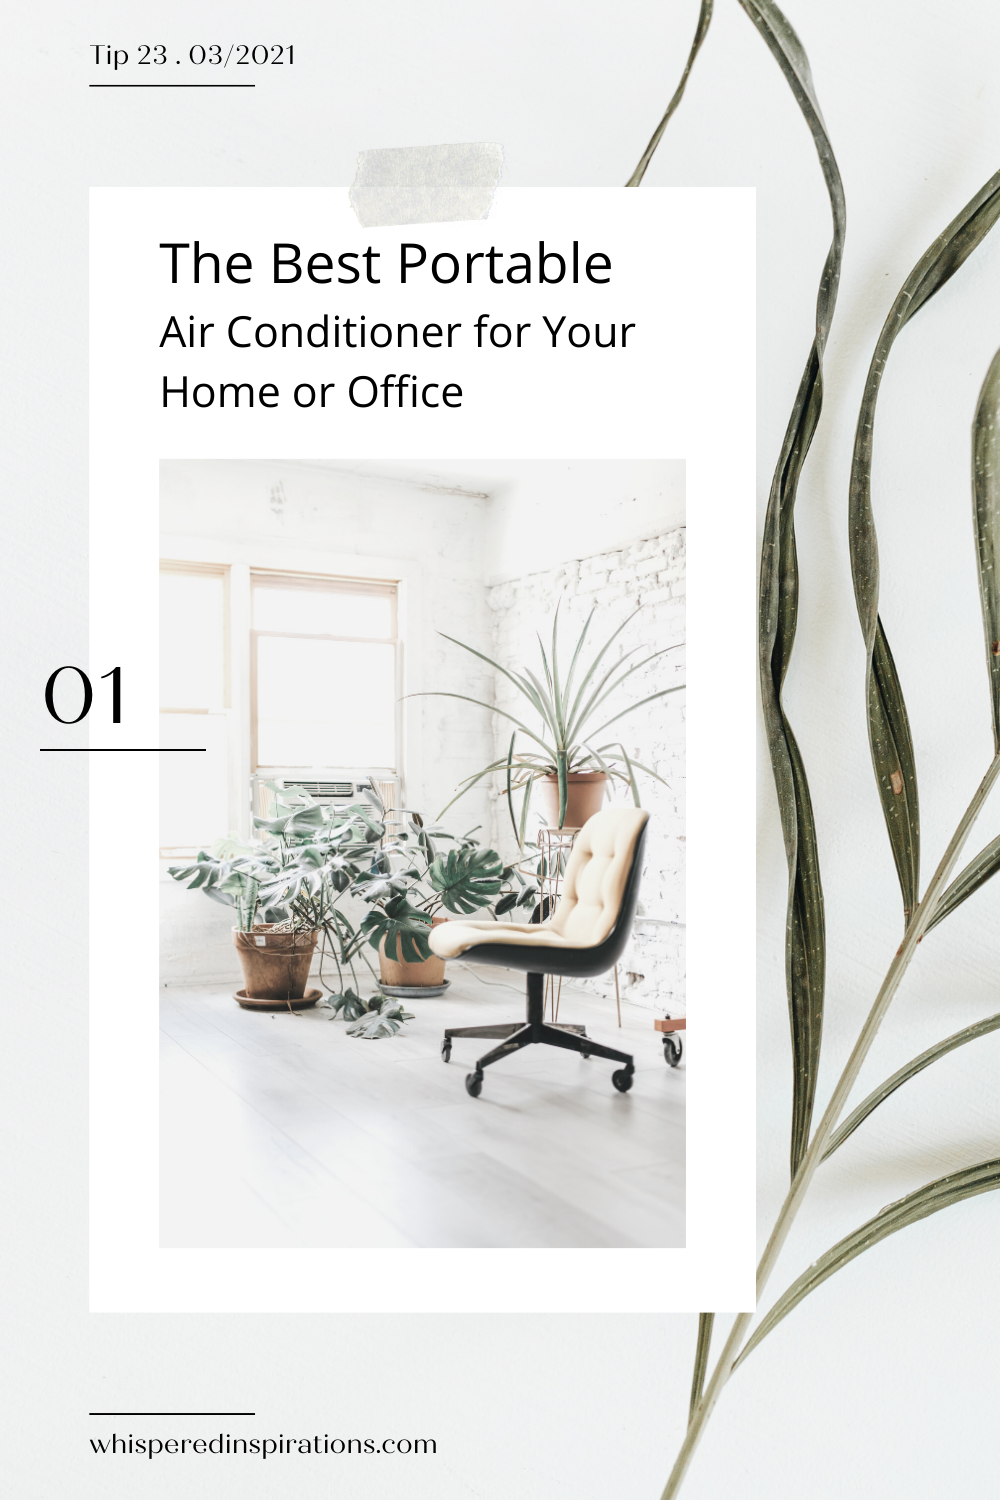 A beautiful, airy, and open office. This article offers how to find the best portable air conditioners for your home or office.